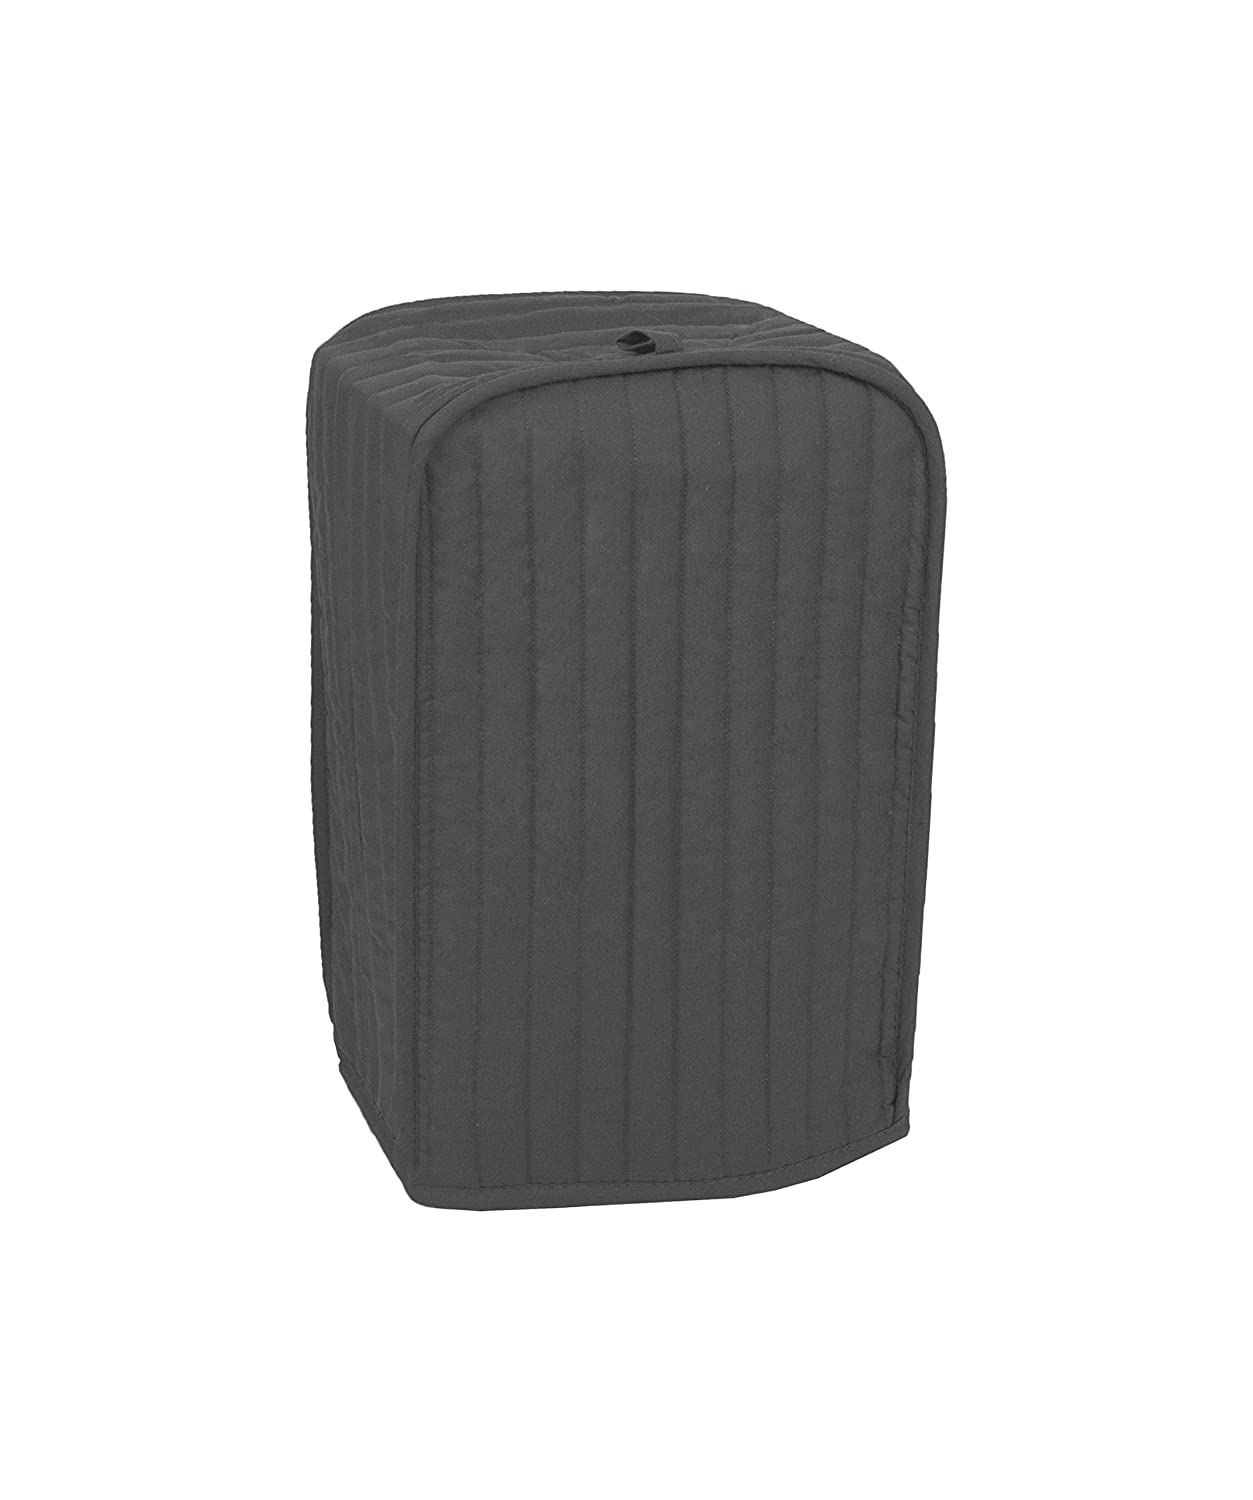 RITZ Polyester / Cotton Quilted Stand Mixer or Coffee Maker Appliance Cover, Dust and Fingerprint Protection, Machine Washable, Graphite Grey